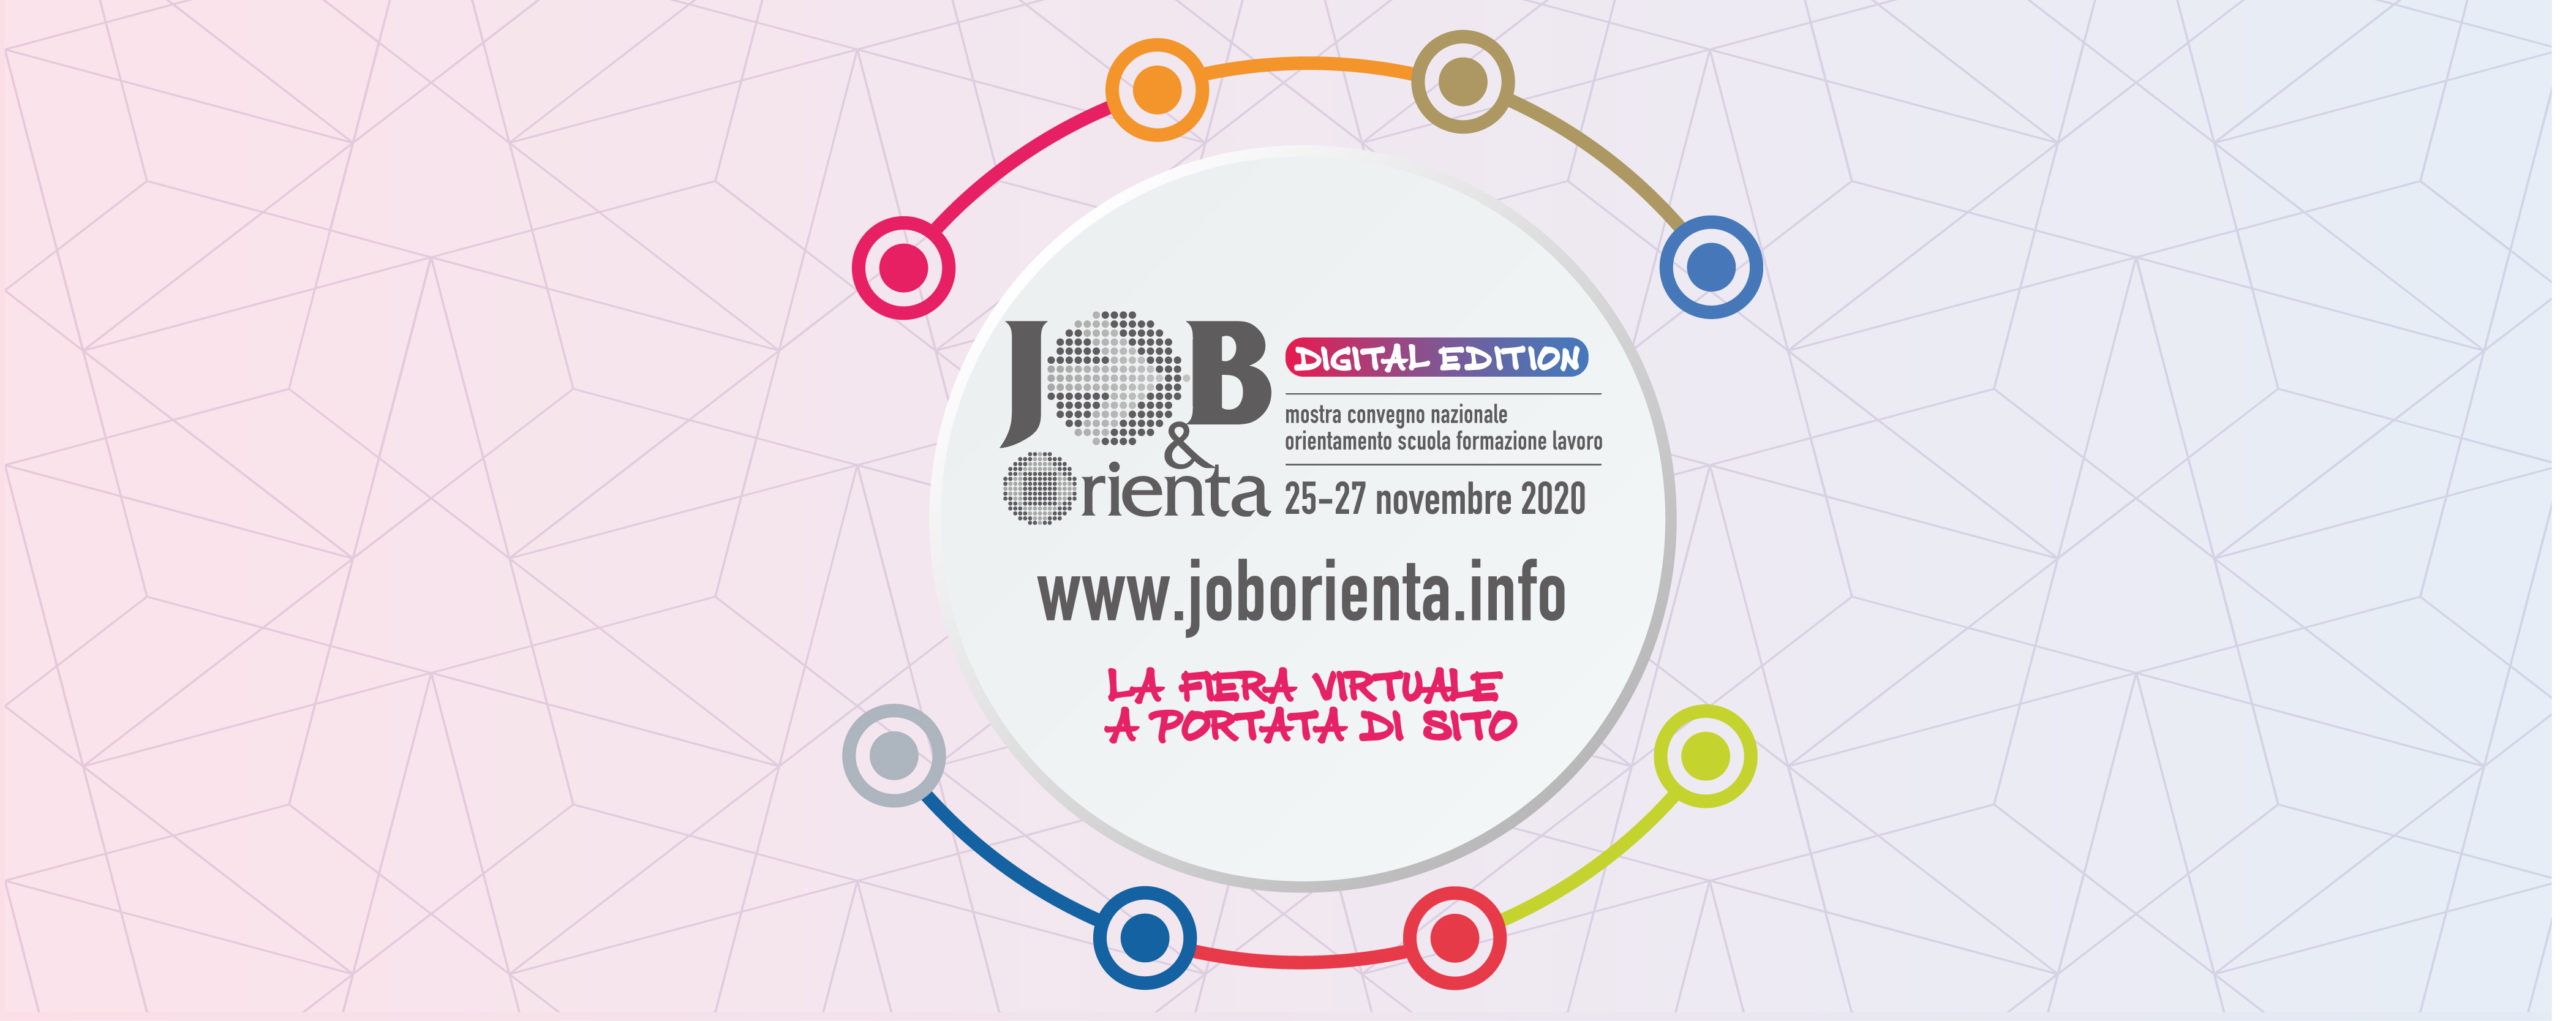 JOB & ORIENTA 2020 - DIGITAL EDITION